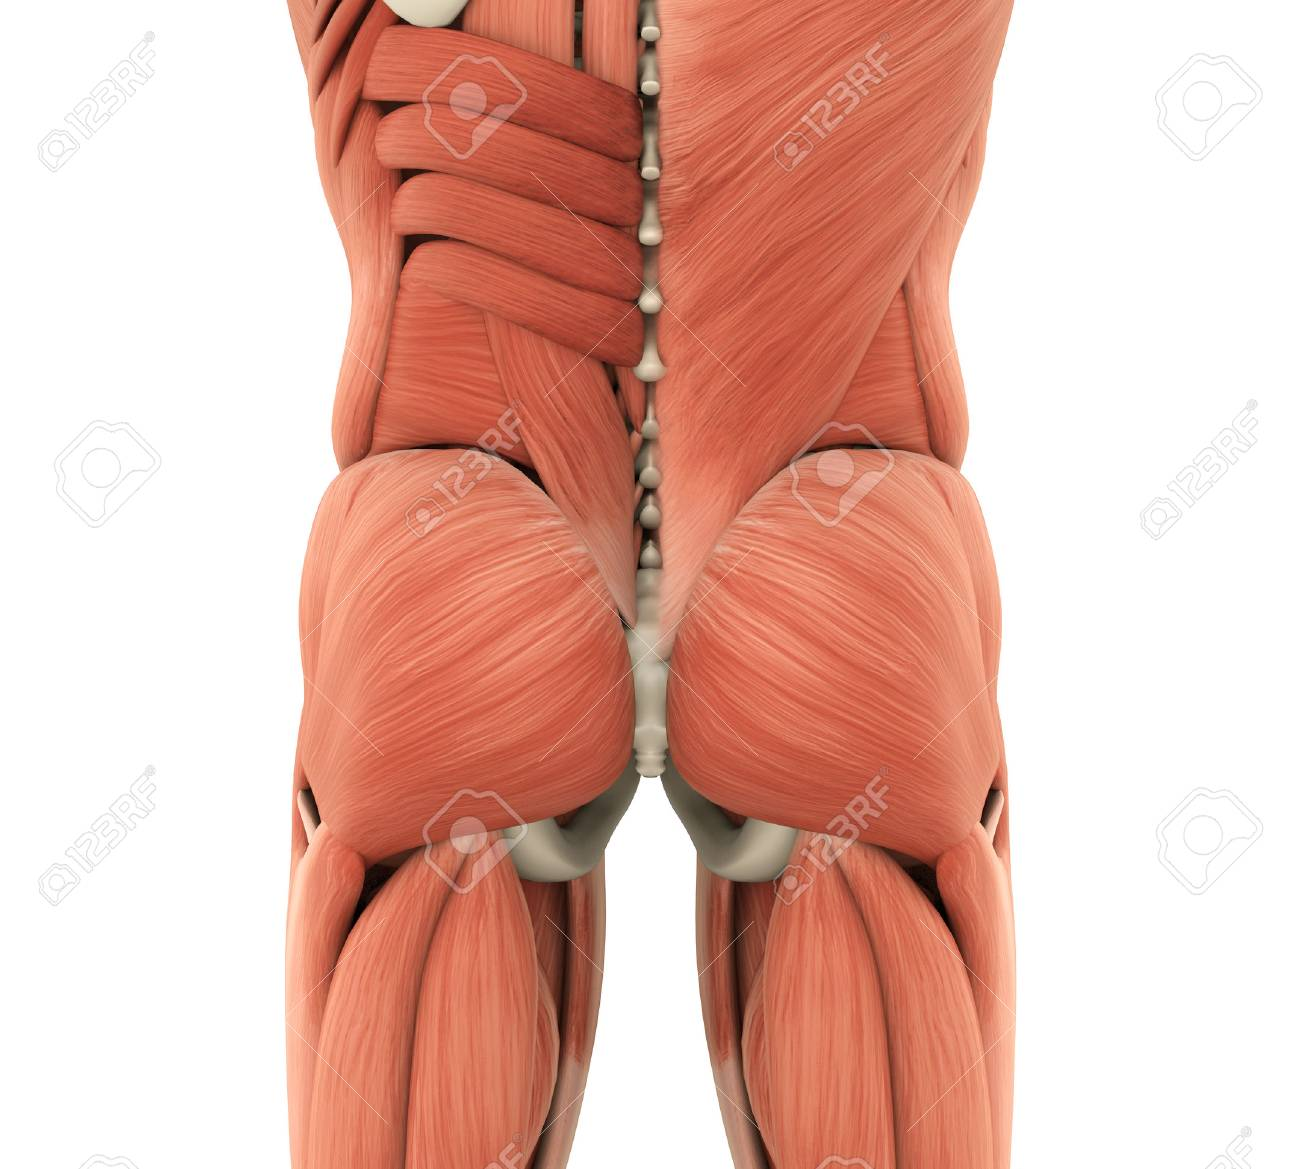 Human Gluteal Muscles Anatomy Stock Photo, Picture And Royalty Free ...